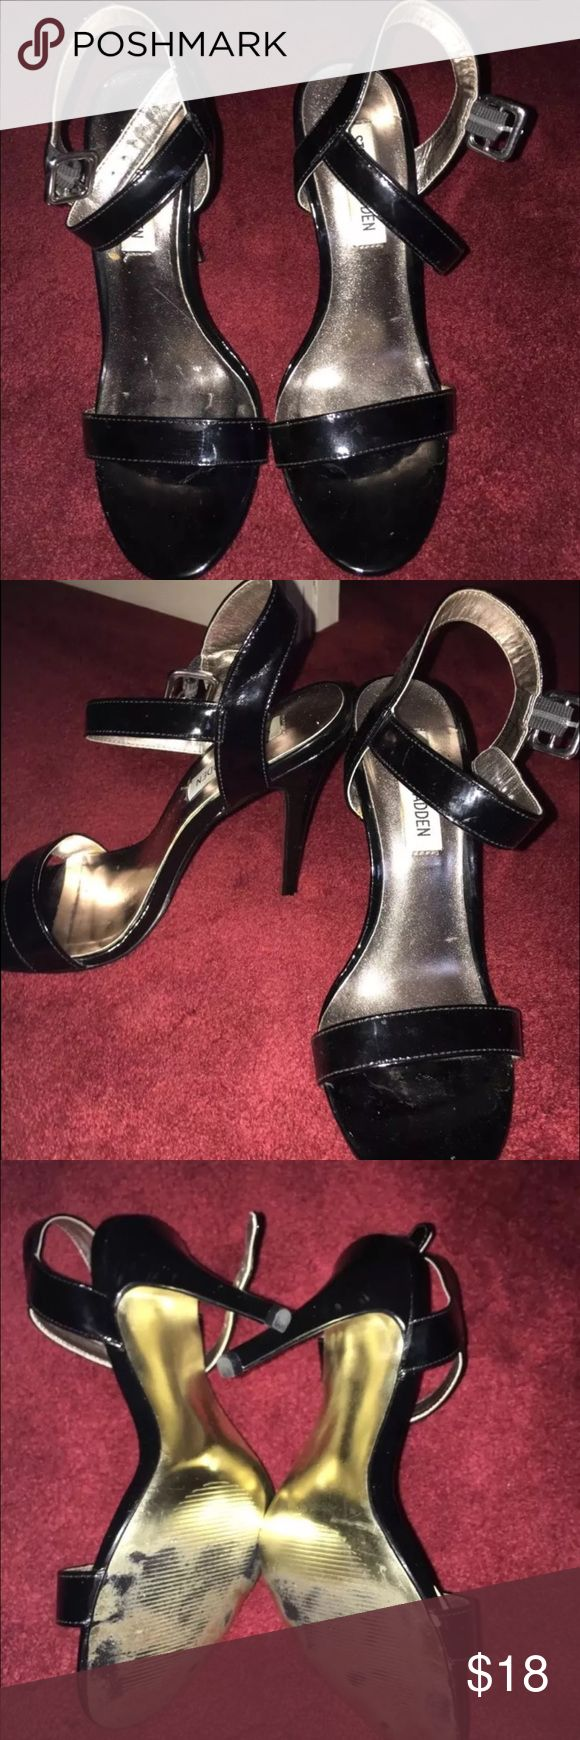 Steve Madden Patent leather heels /pumps beautiful Beautiful nude heels. Perfect for summer! Size 7 . Have been worn one time. These beauties have been seen on kylie jenner and rihanna! Paid $99.00 . The heel height is 4.5 Steve Madden Shoes Heels